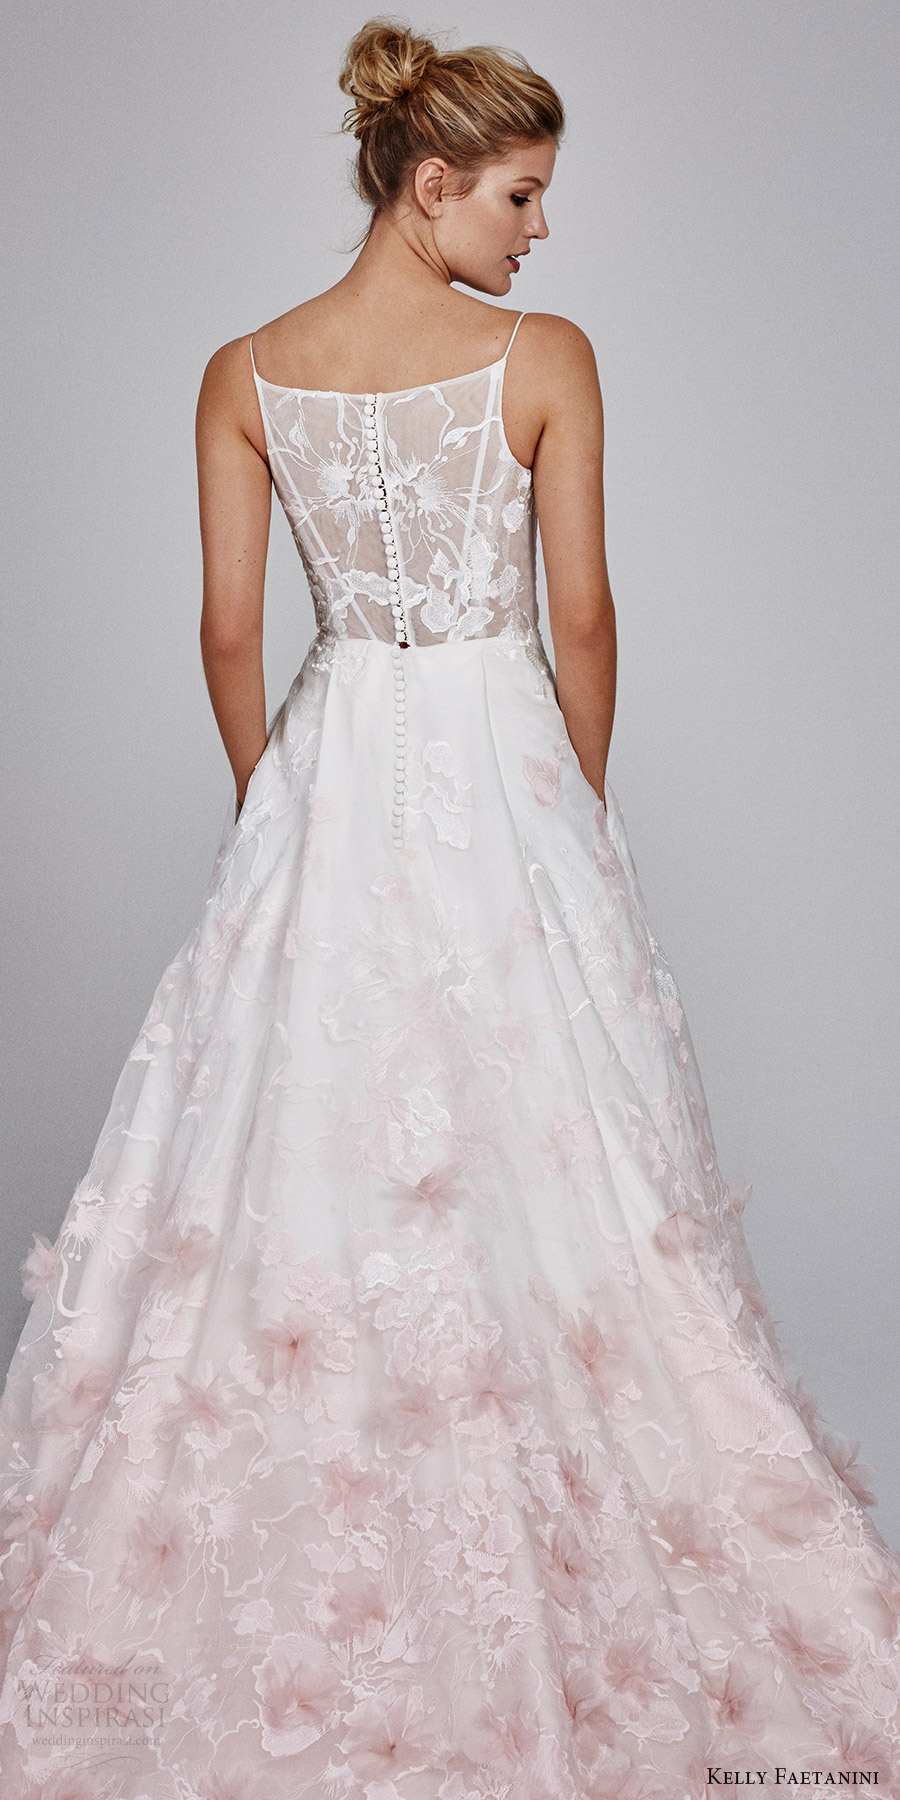 spring wedding trend ombre r ombre wedding dress Wedding Dresses Posted Image